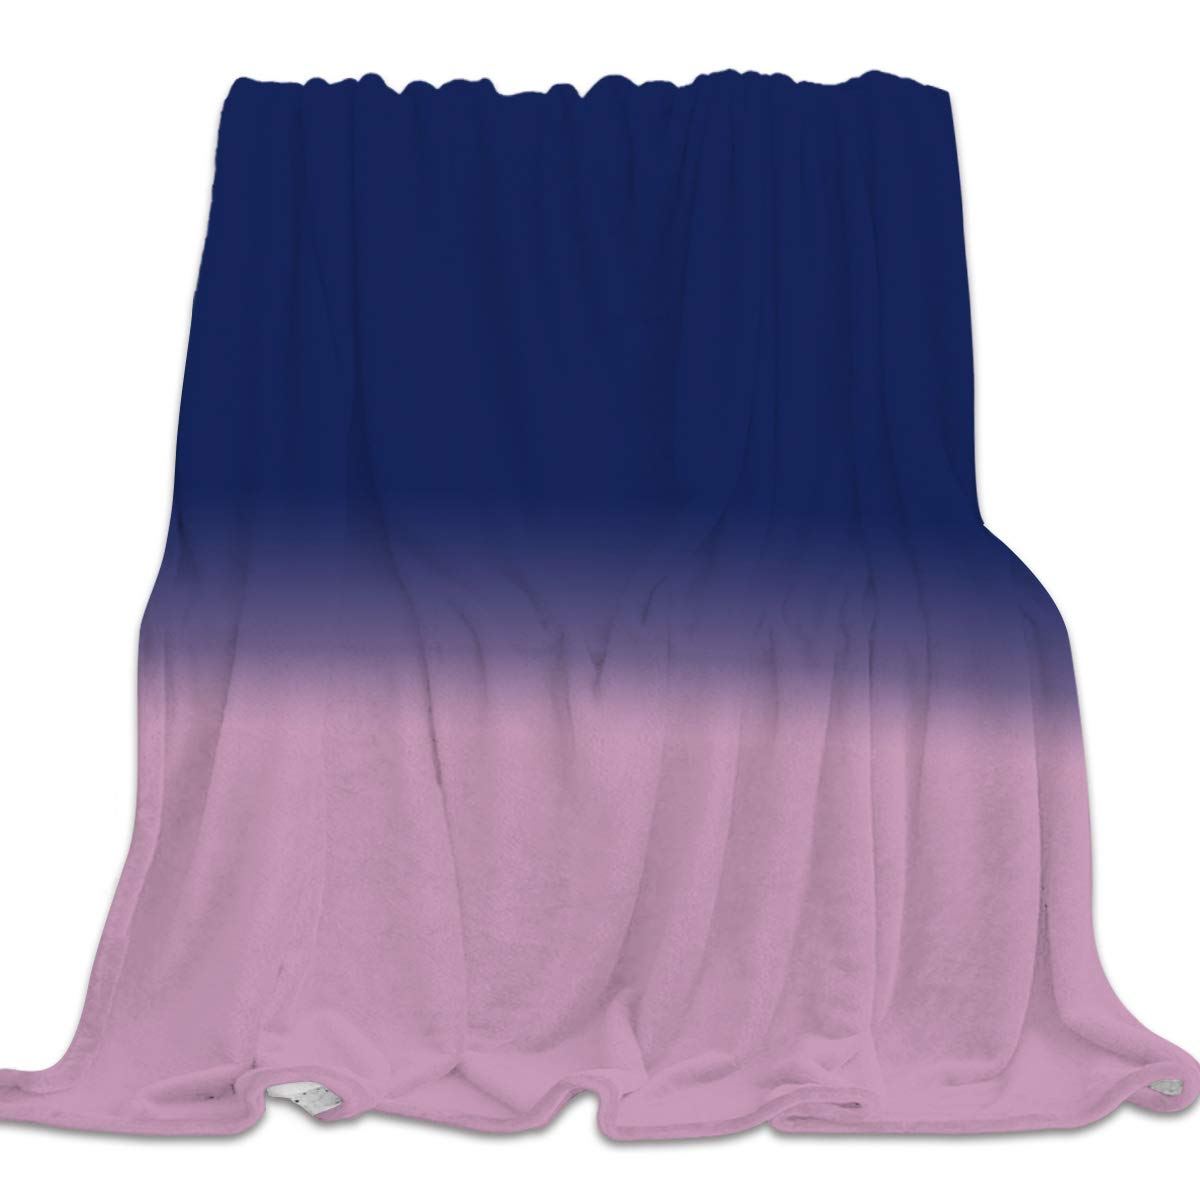 Minimalism 22yag9792 49x59inch=125x150cm YEHO Art Gallery 49x59 Inch Flannel Fleece Bed Blanket Soft ThrowBlankets for Kids Adult,Gradient bluee and Pink Pattern,Lightweight Blankets for Bedroom Living Room Sofa Couch Home Decor